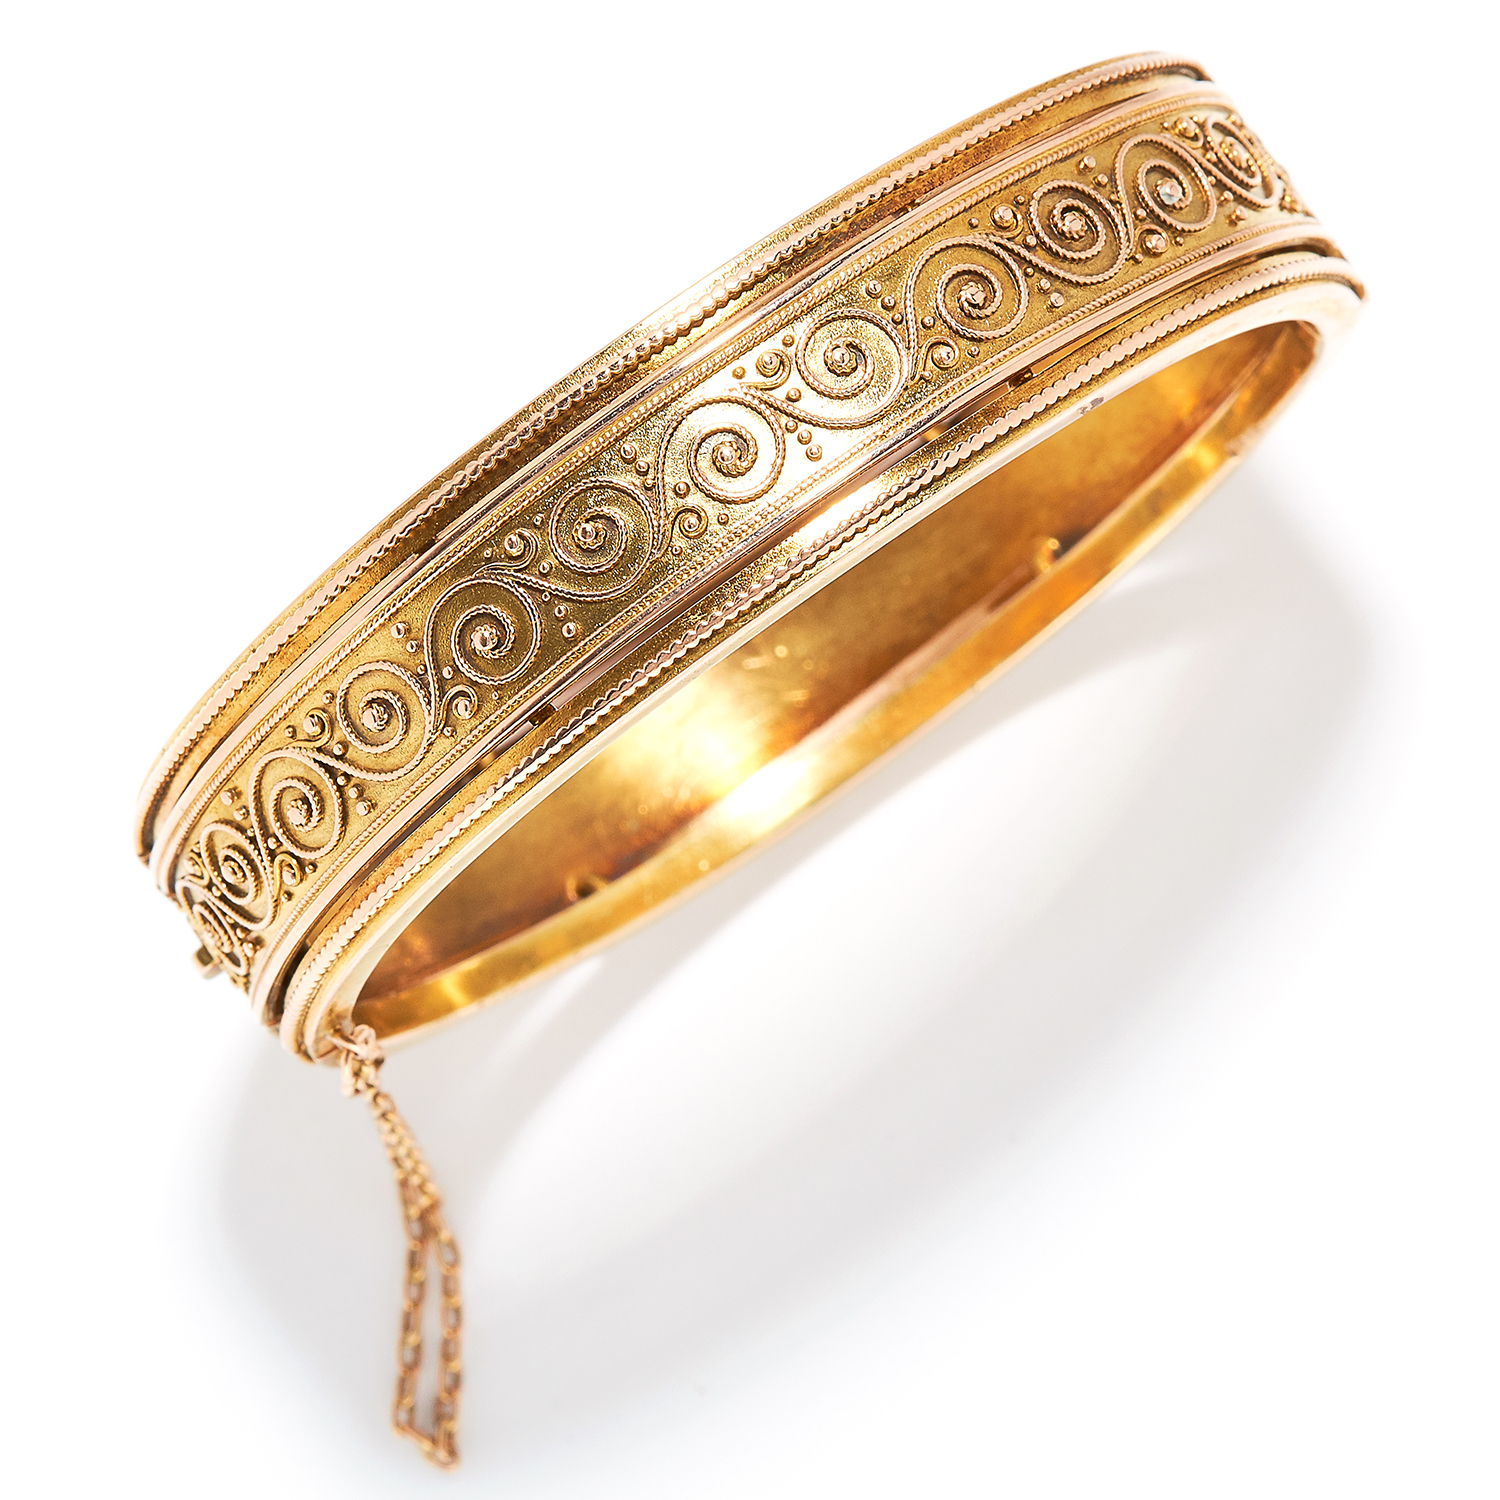 GOLD BANGLE, CARL BACHER in yellow gold, Etruscan revival manner with scrolling wirework designs,